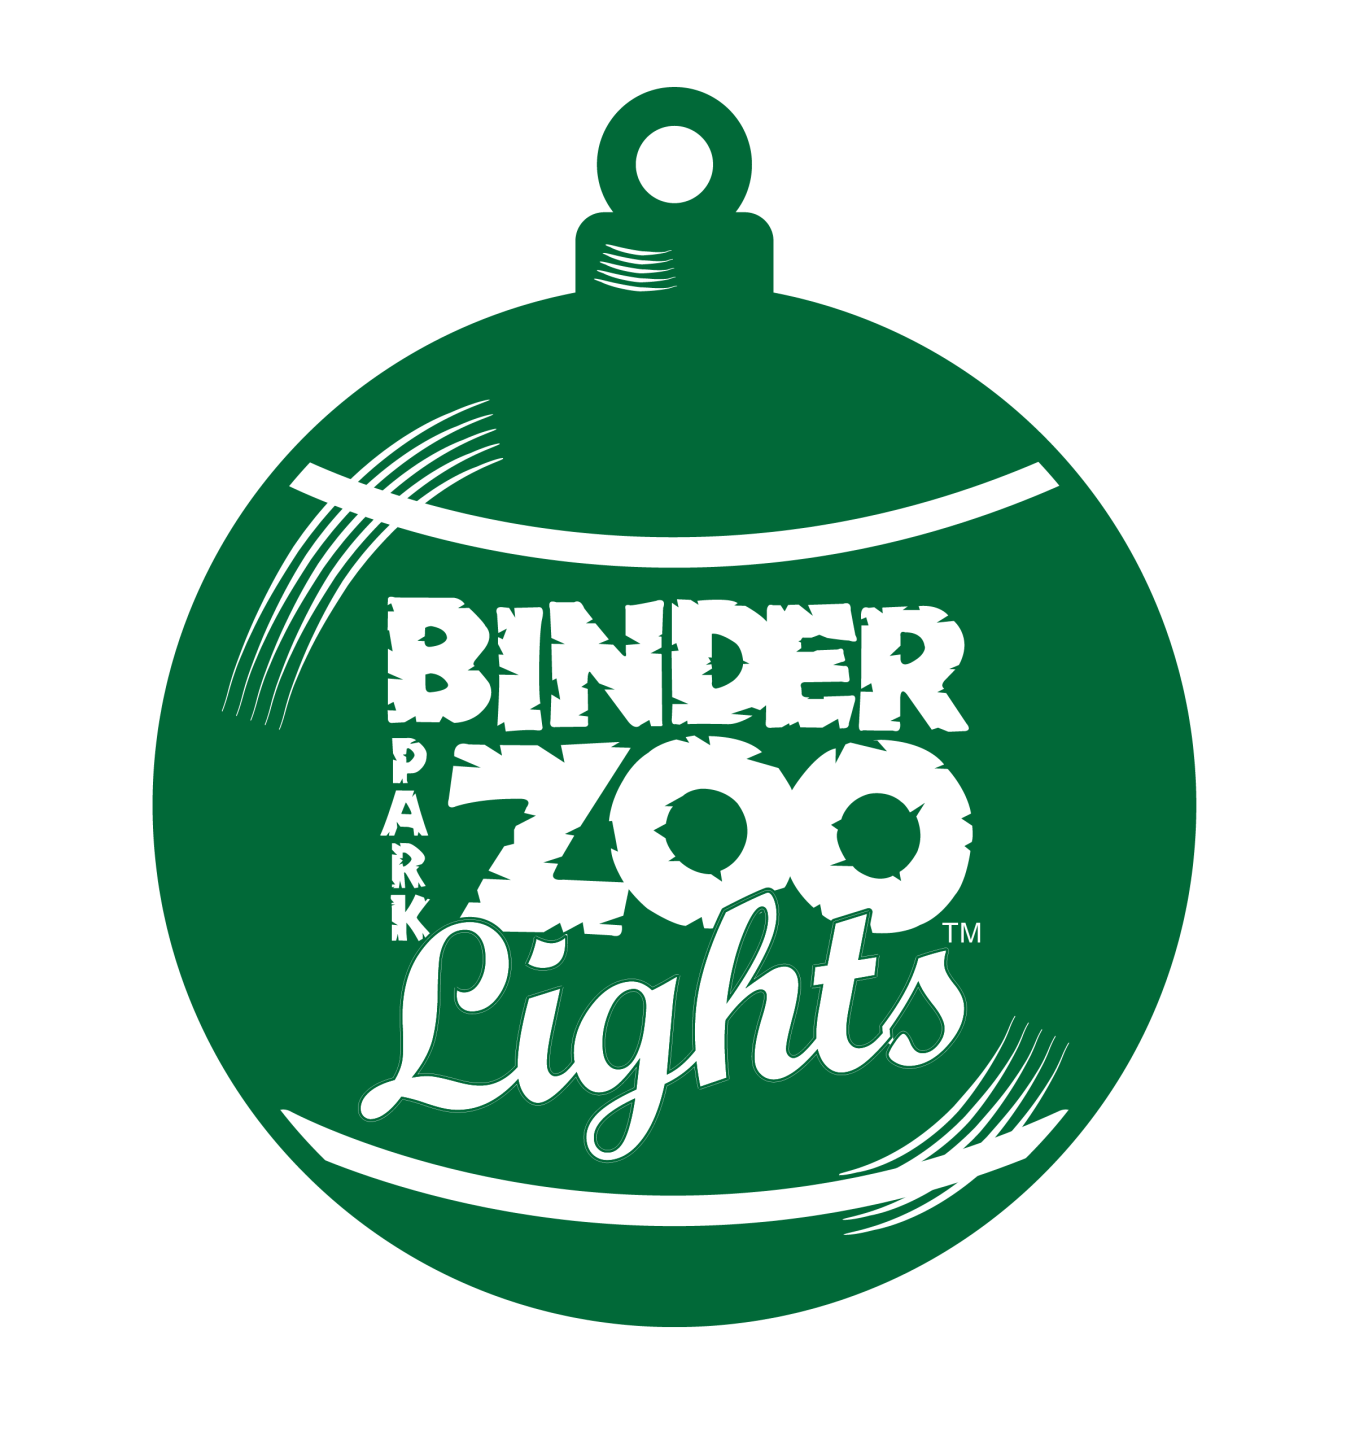 zoolights__logo.png